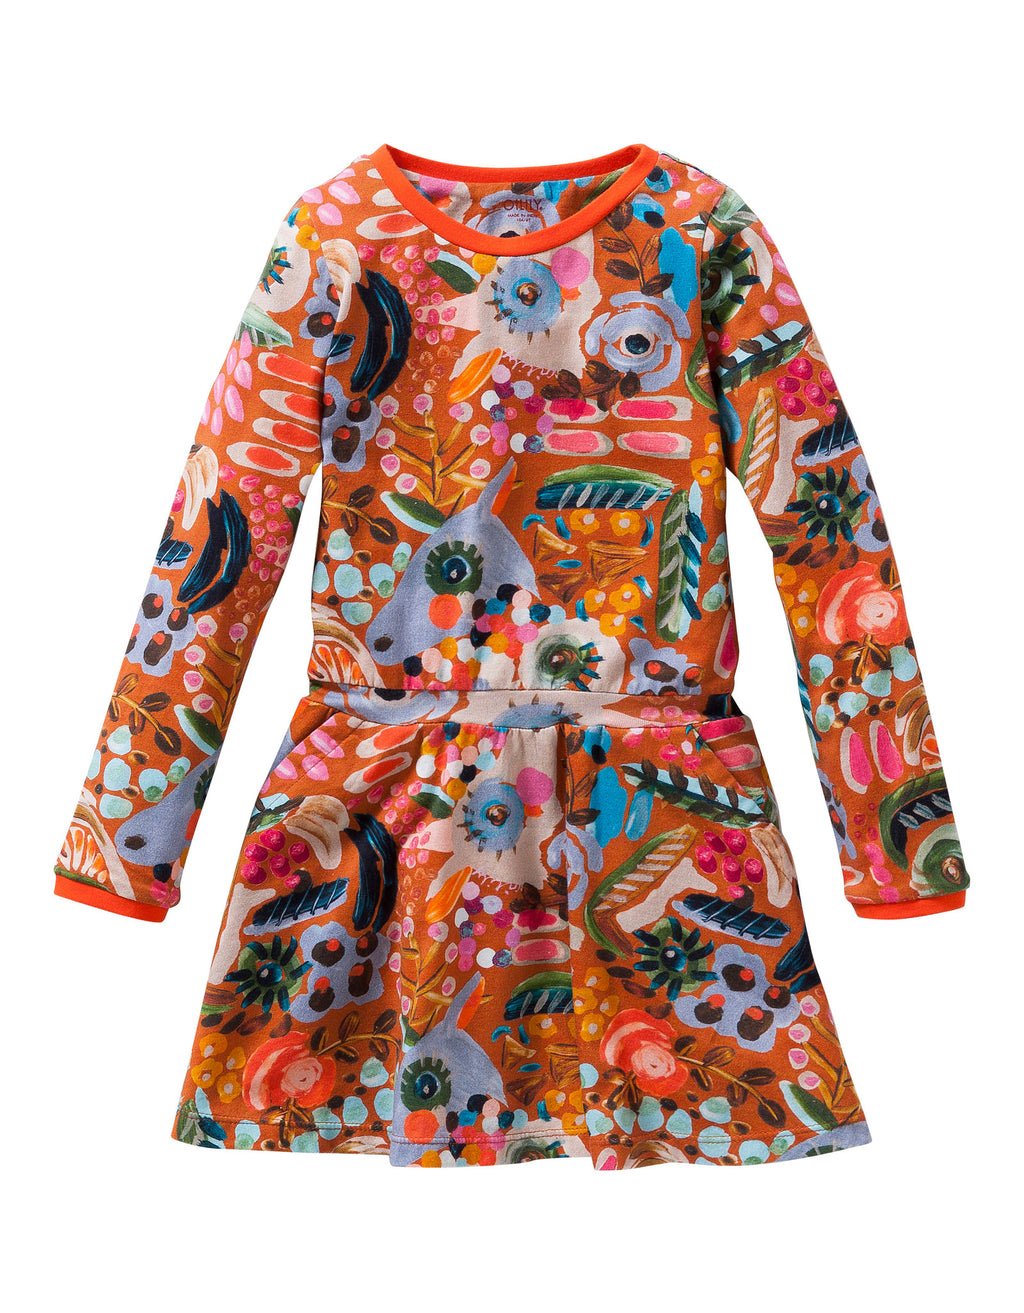 AW16 Oilily Girls Toop Jersey Dress 83 All-Over Painterly Caramel - Liquorice Kids